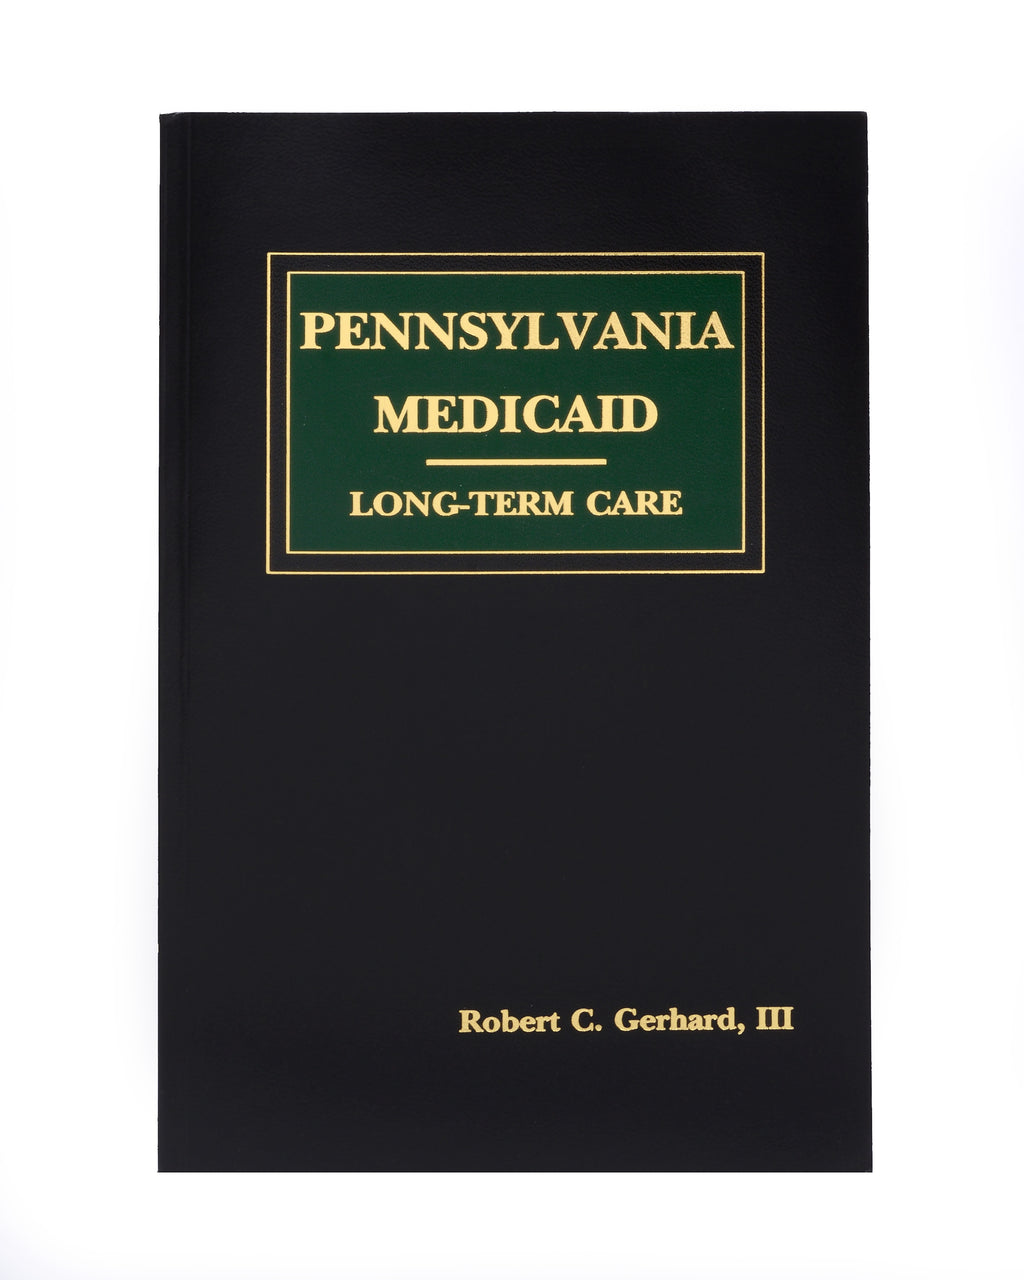 Pennsylvania Medicaid - Long-Term Care (includes book + digital download)